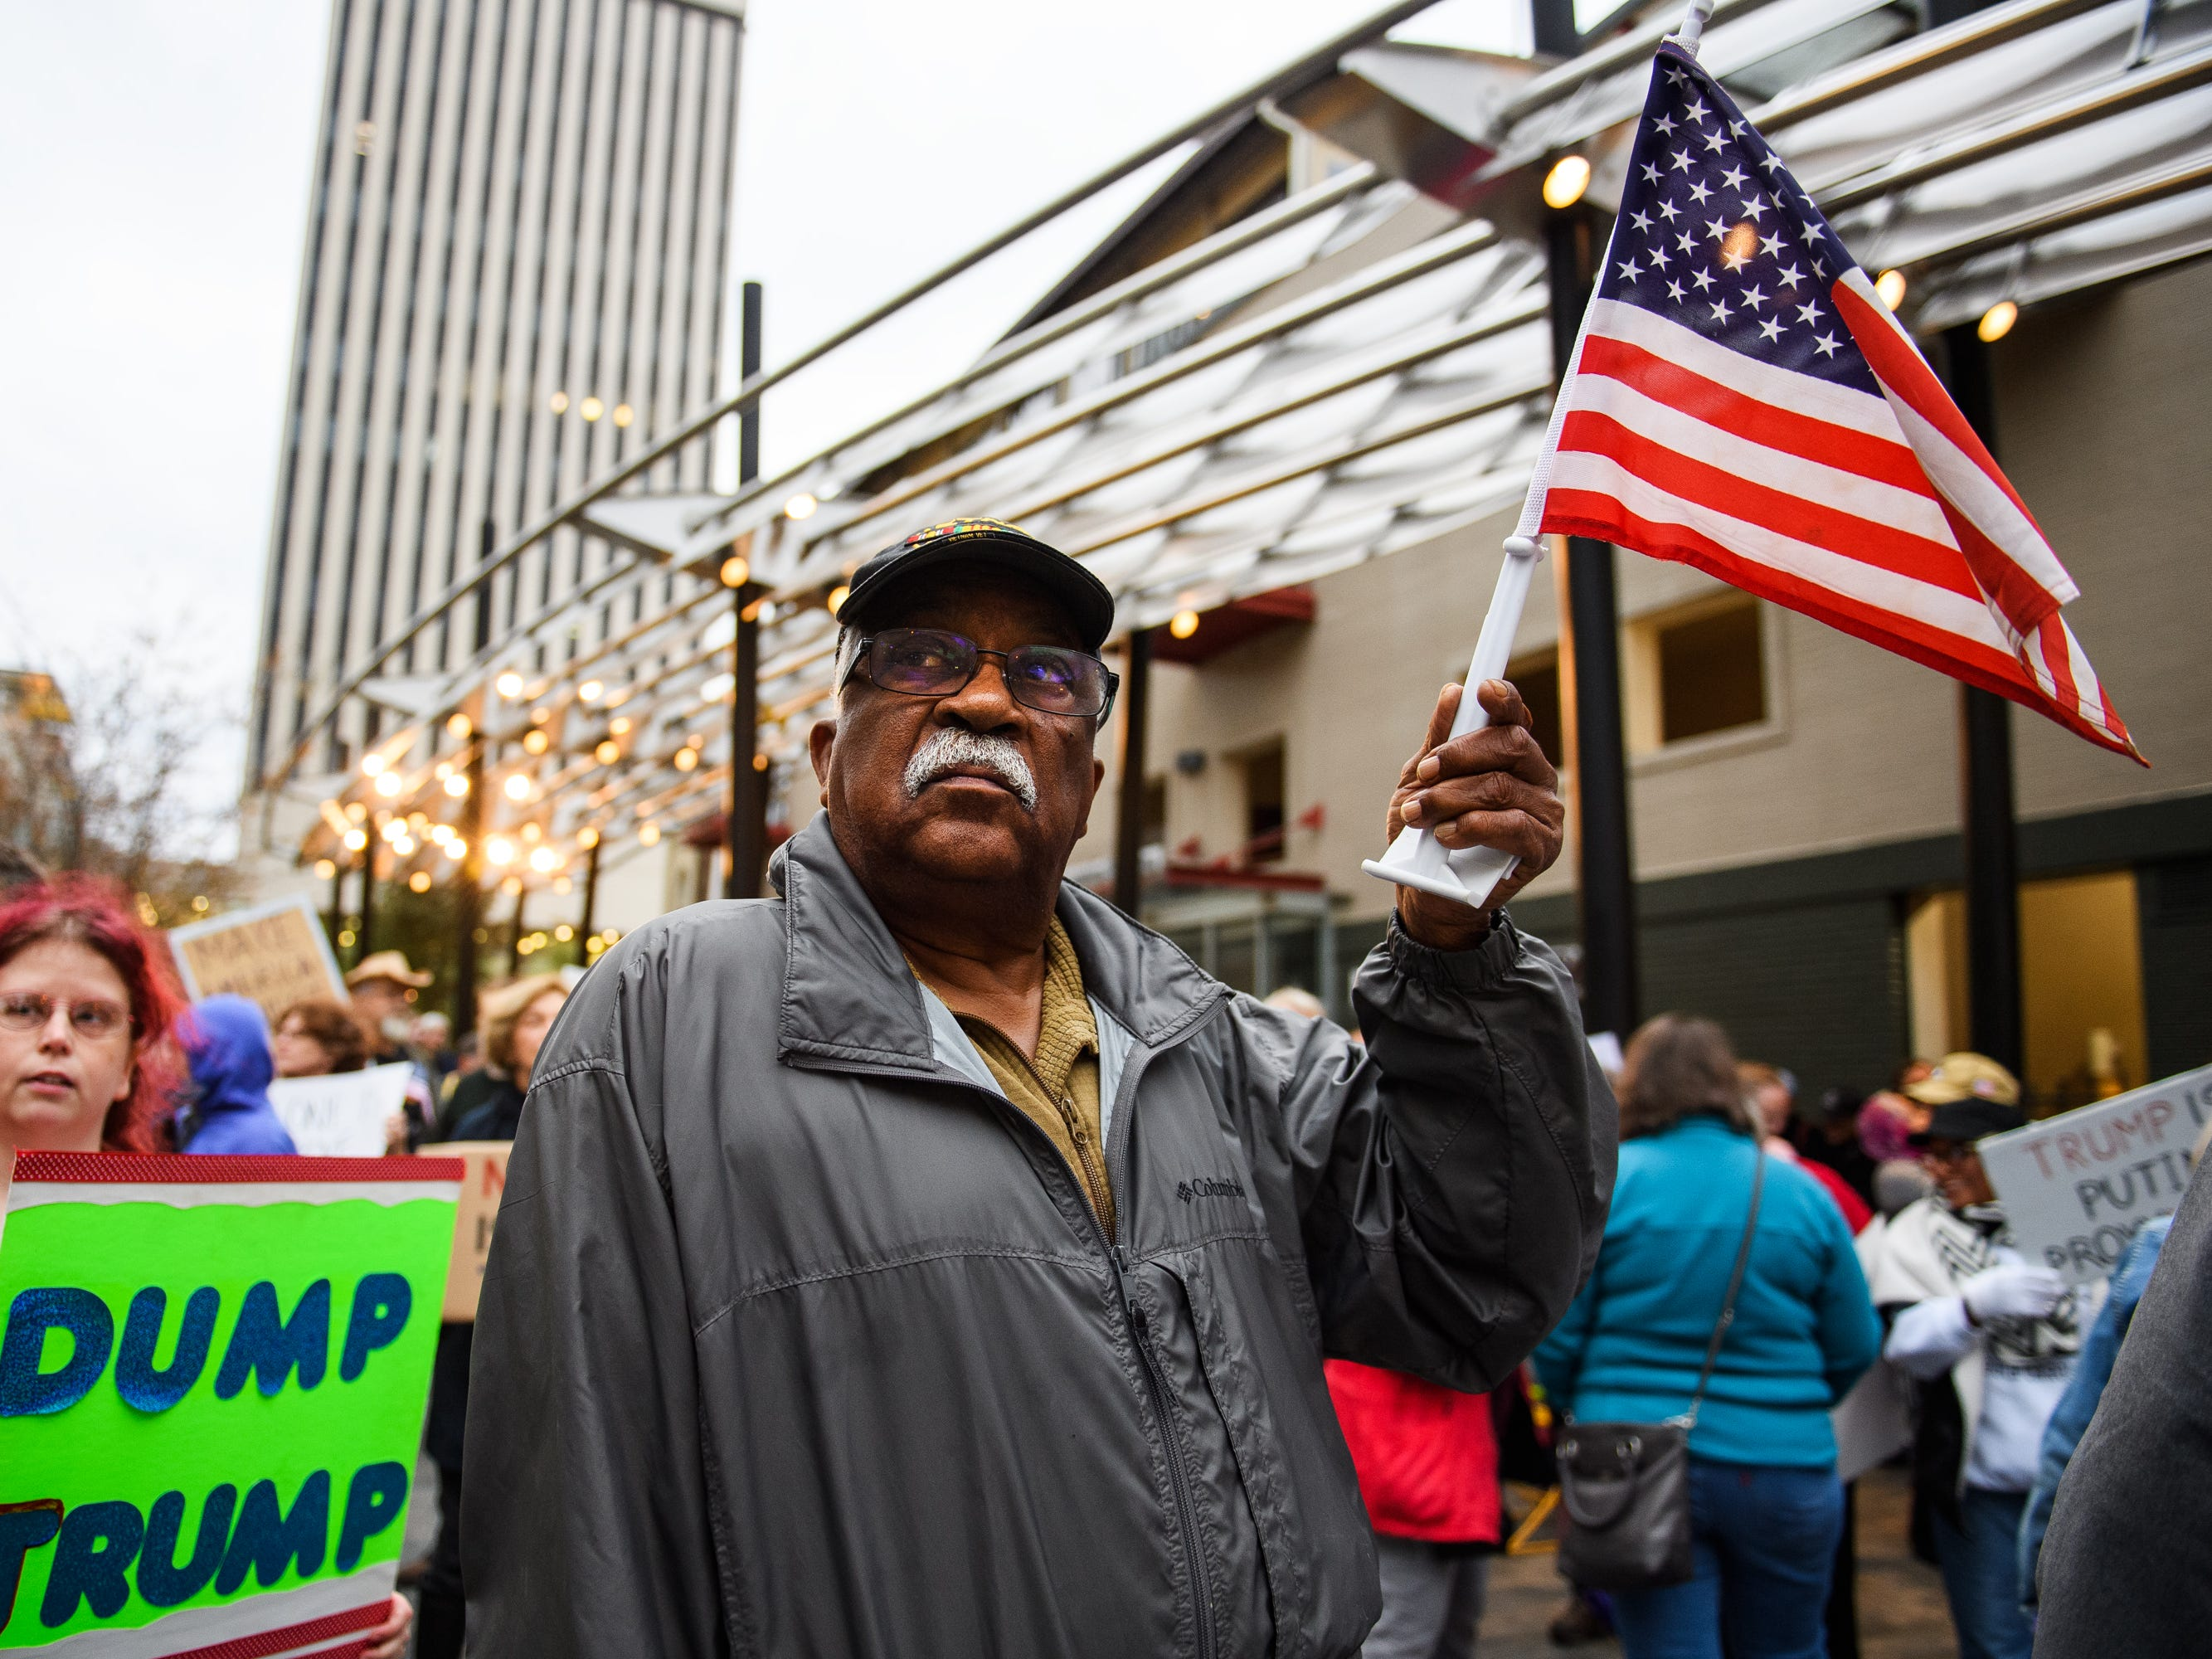 EJ Irick waves an American flag as he and other protesters voice their fears that President Donald Trump is derailing the Mueller investigation at One City Plaza in downtown Greenville on Thursday, Nov 8, 2018.